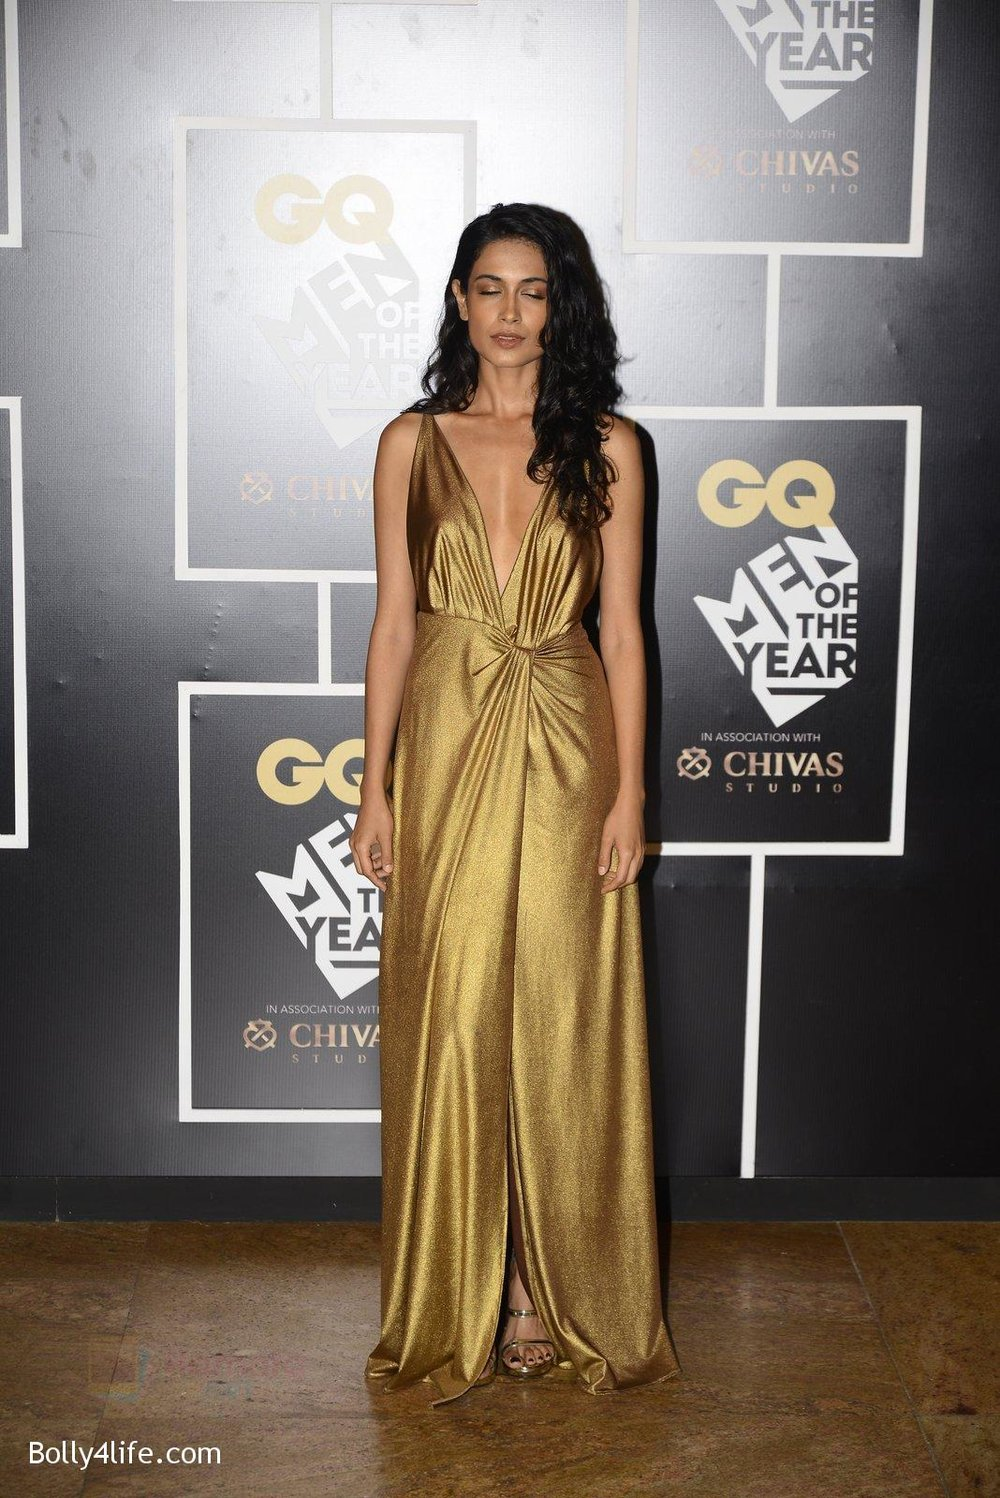 Sarah-Jane-Dias-at-GQ-MEN-OF-THE-YEAR-on-27th-Sept-2016-1065.jpg